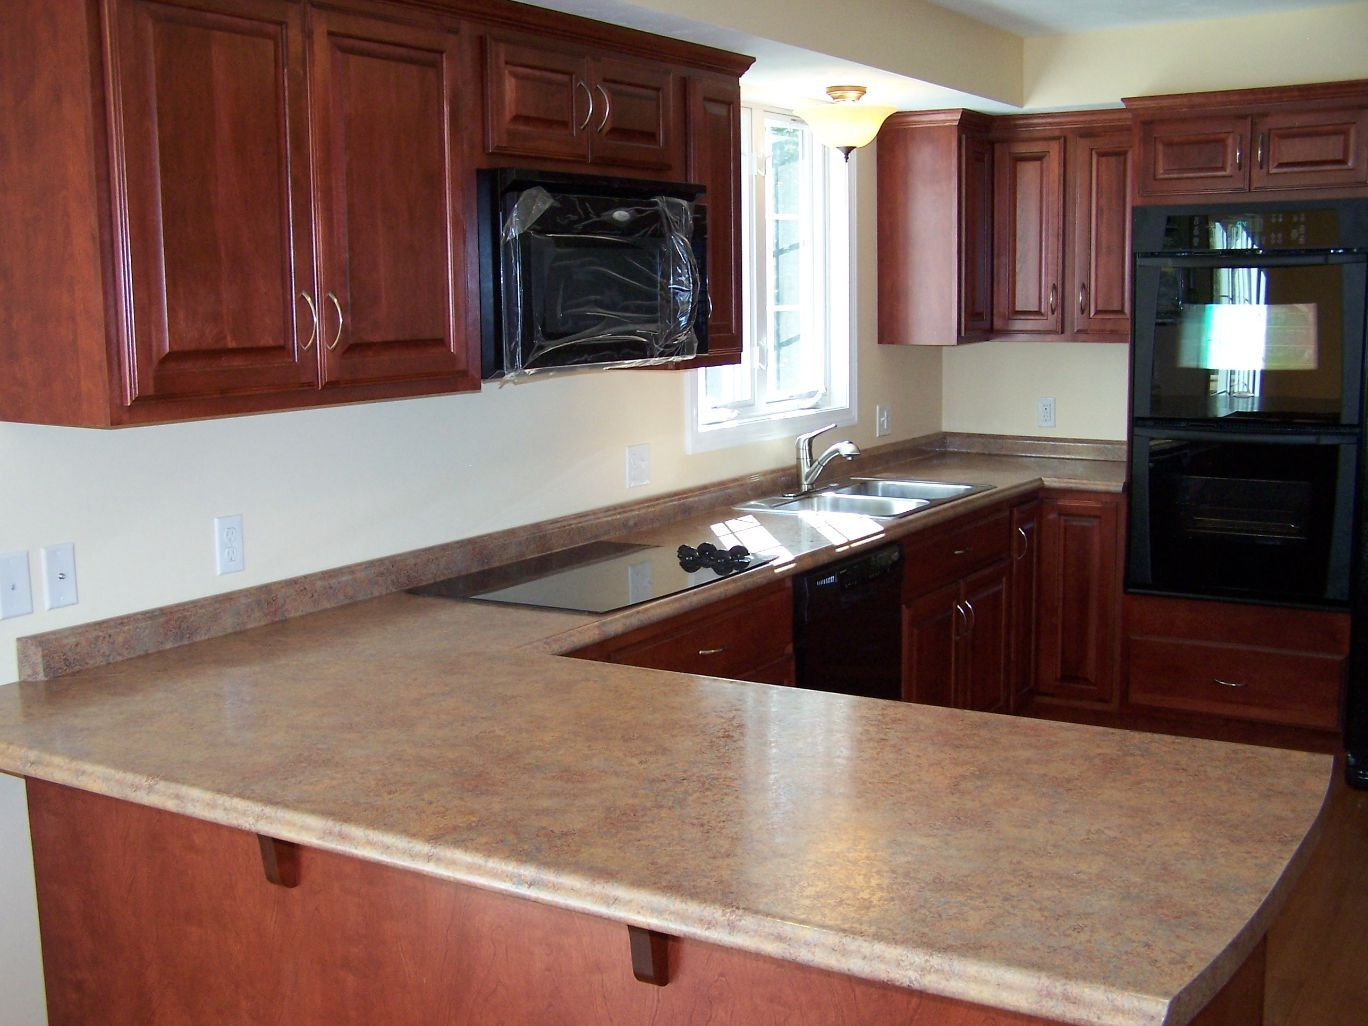 High Quality Oxford Kitchen Chery Cabinets High Def Counters (1368×1026)